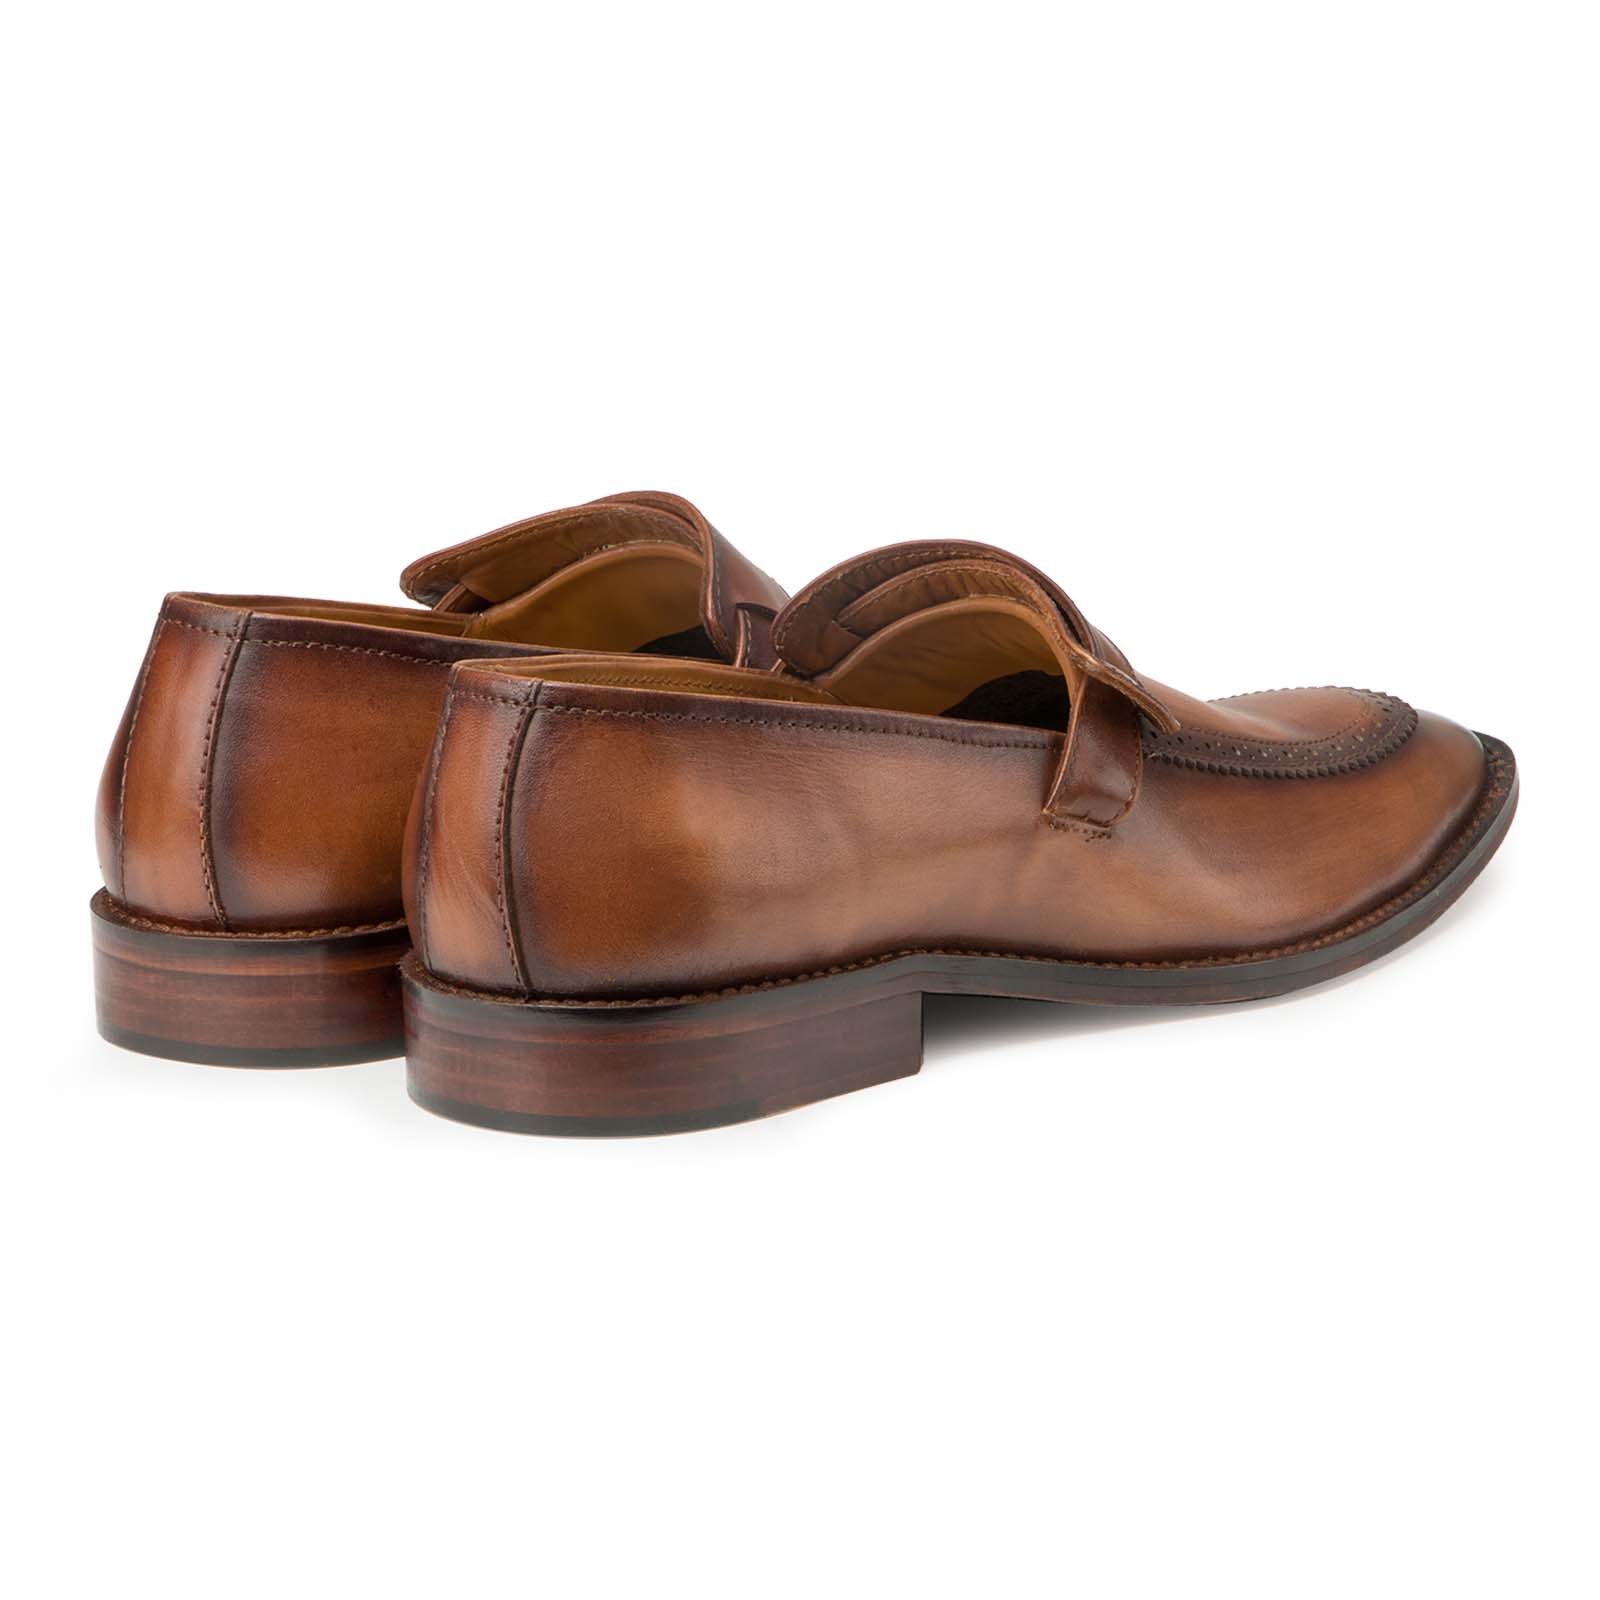 Tan Designer Penny Loafers